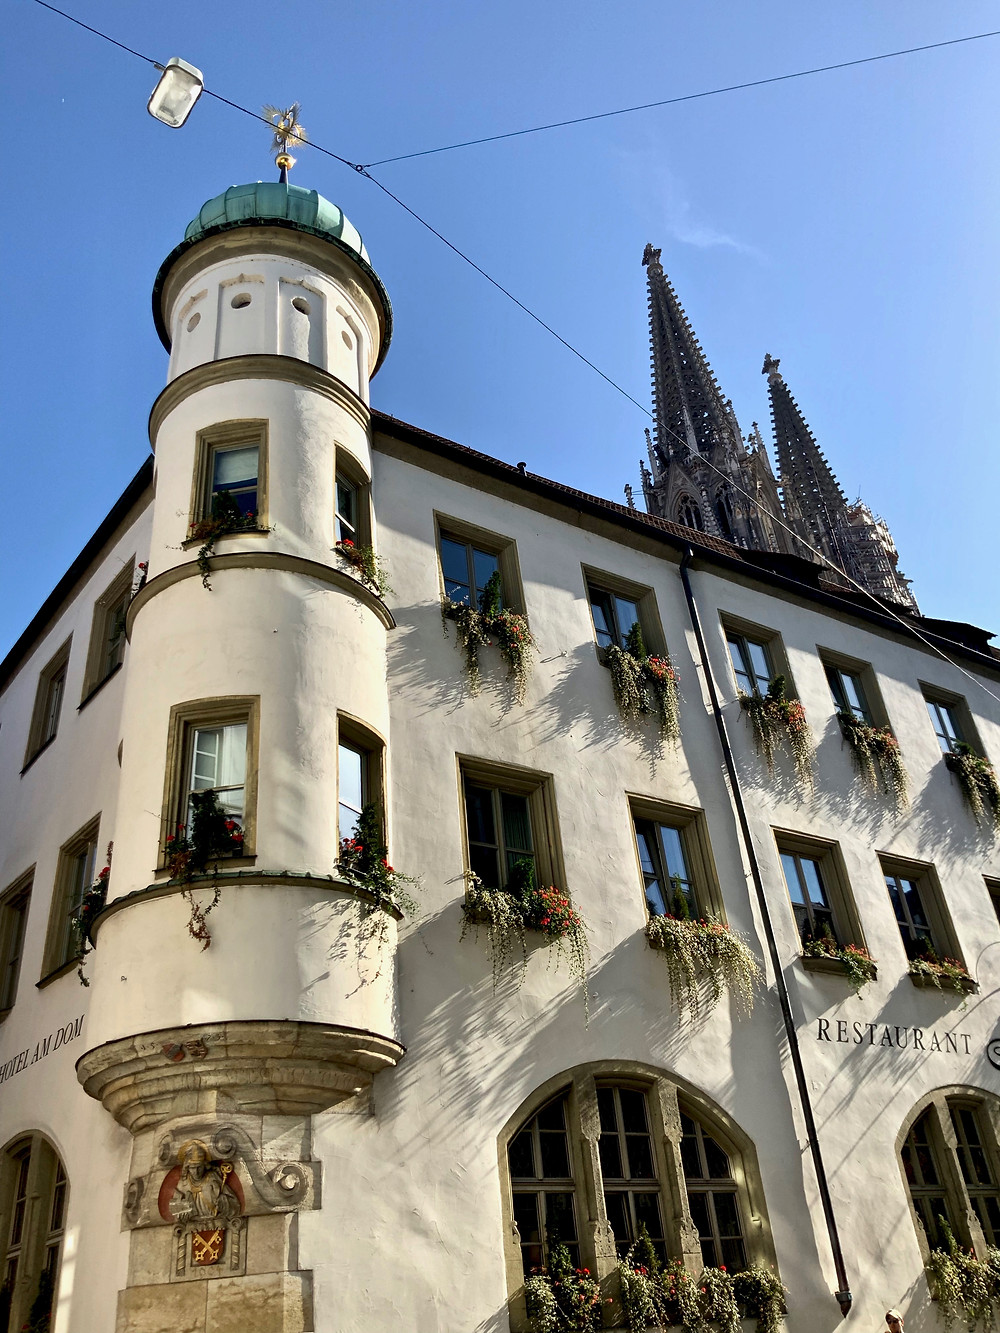 one of the many towers in Regensburg Germany